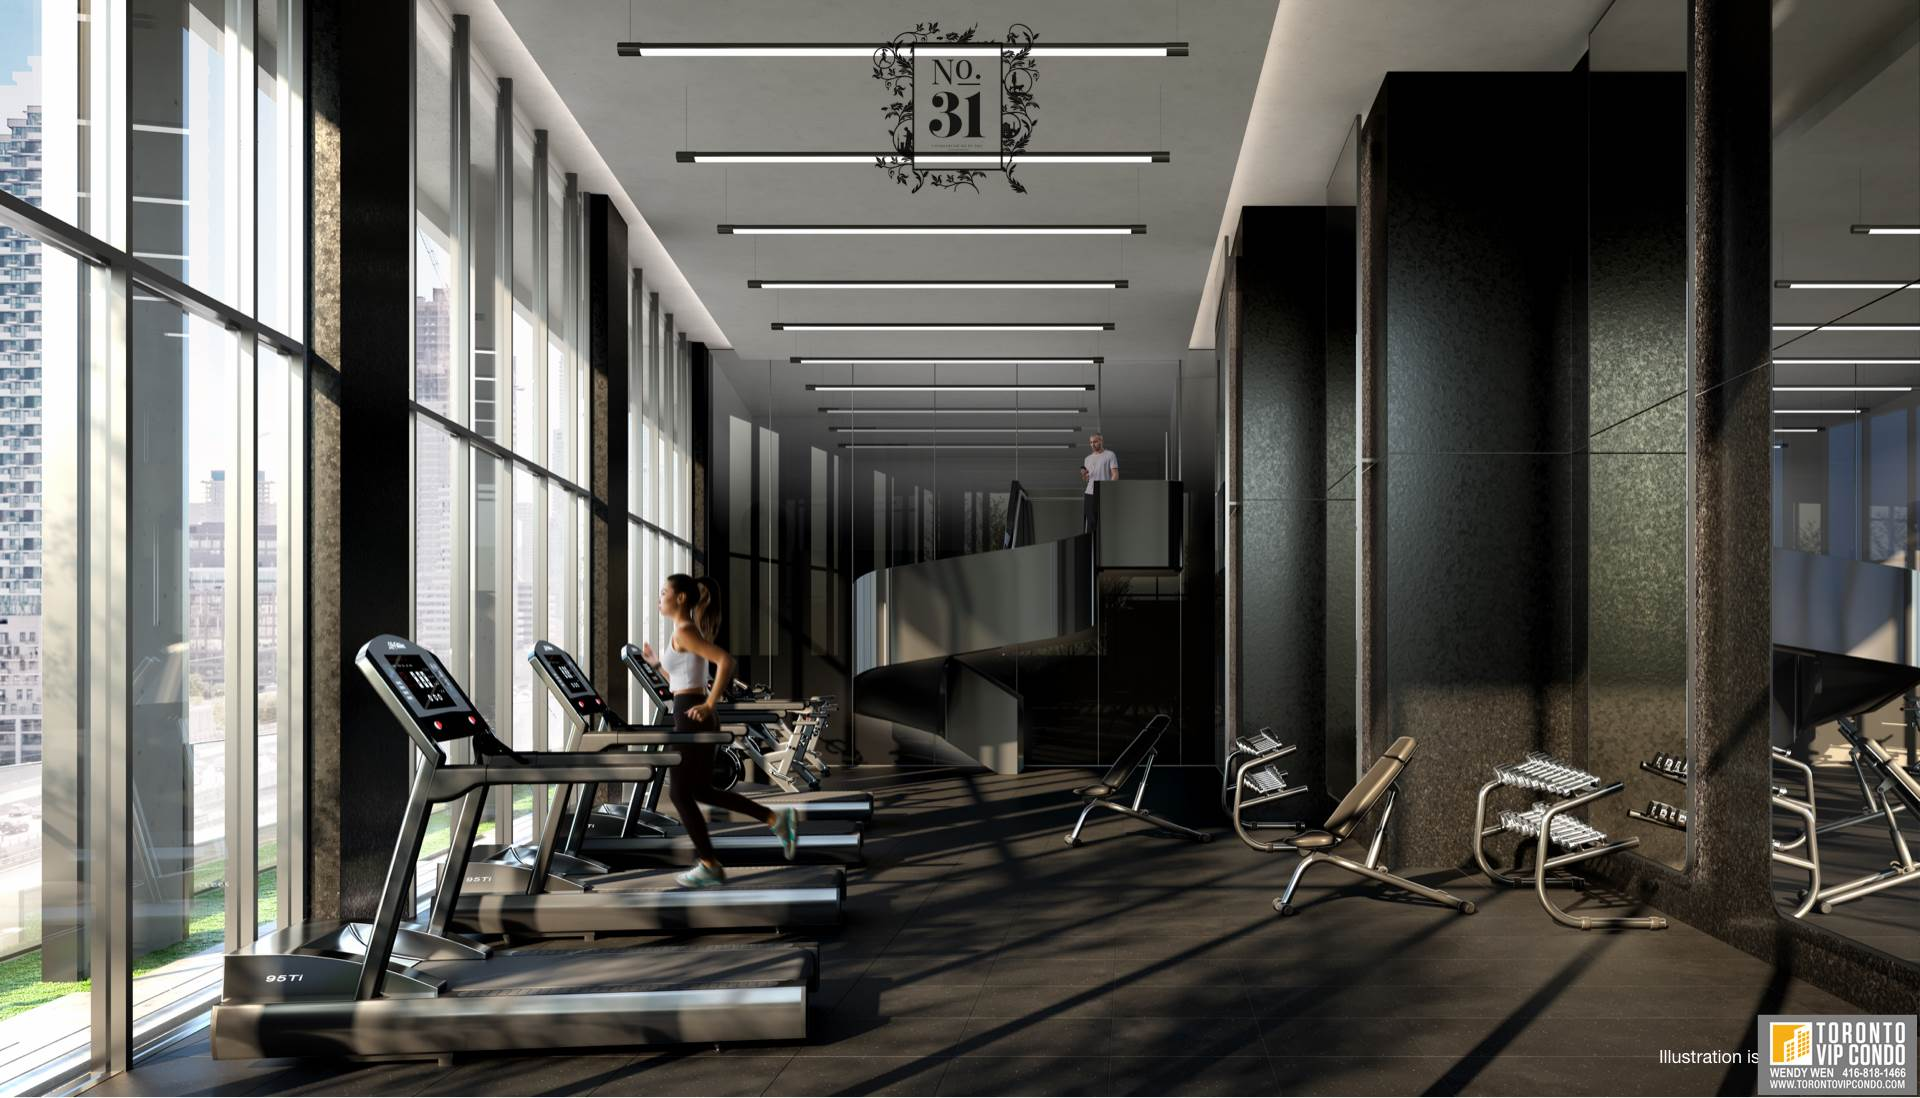 norm-li_191011_int_amenities_gym_vf_01_people_3